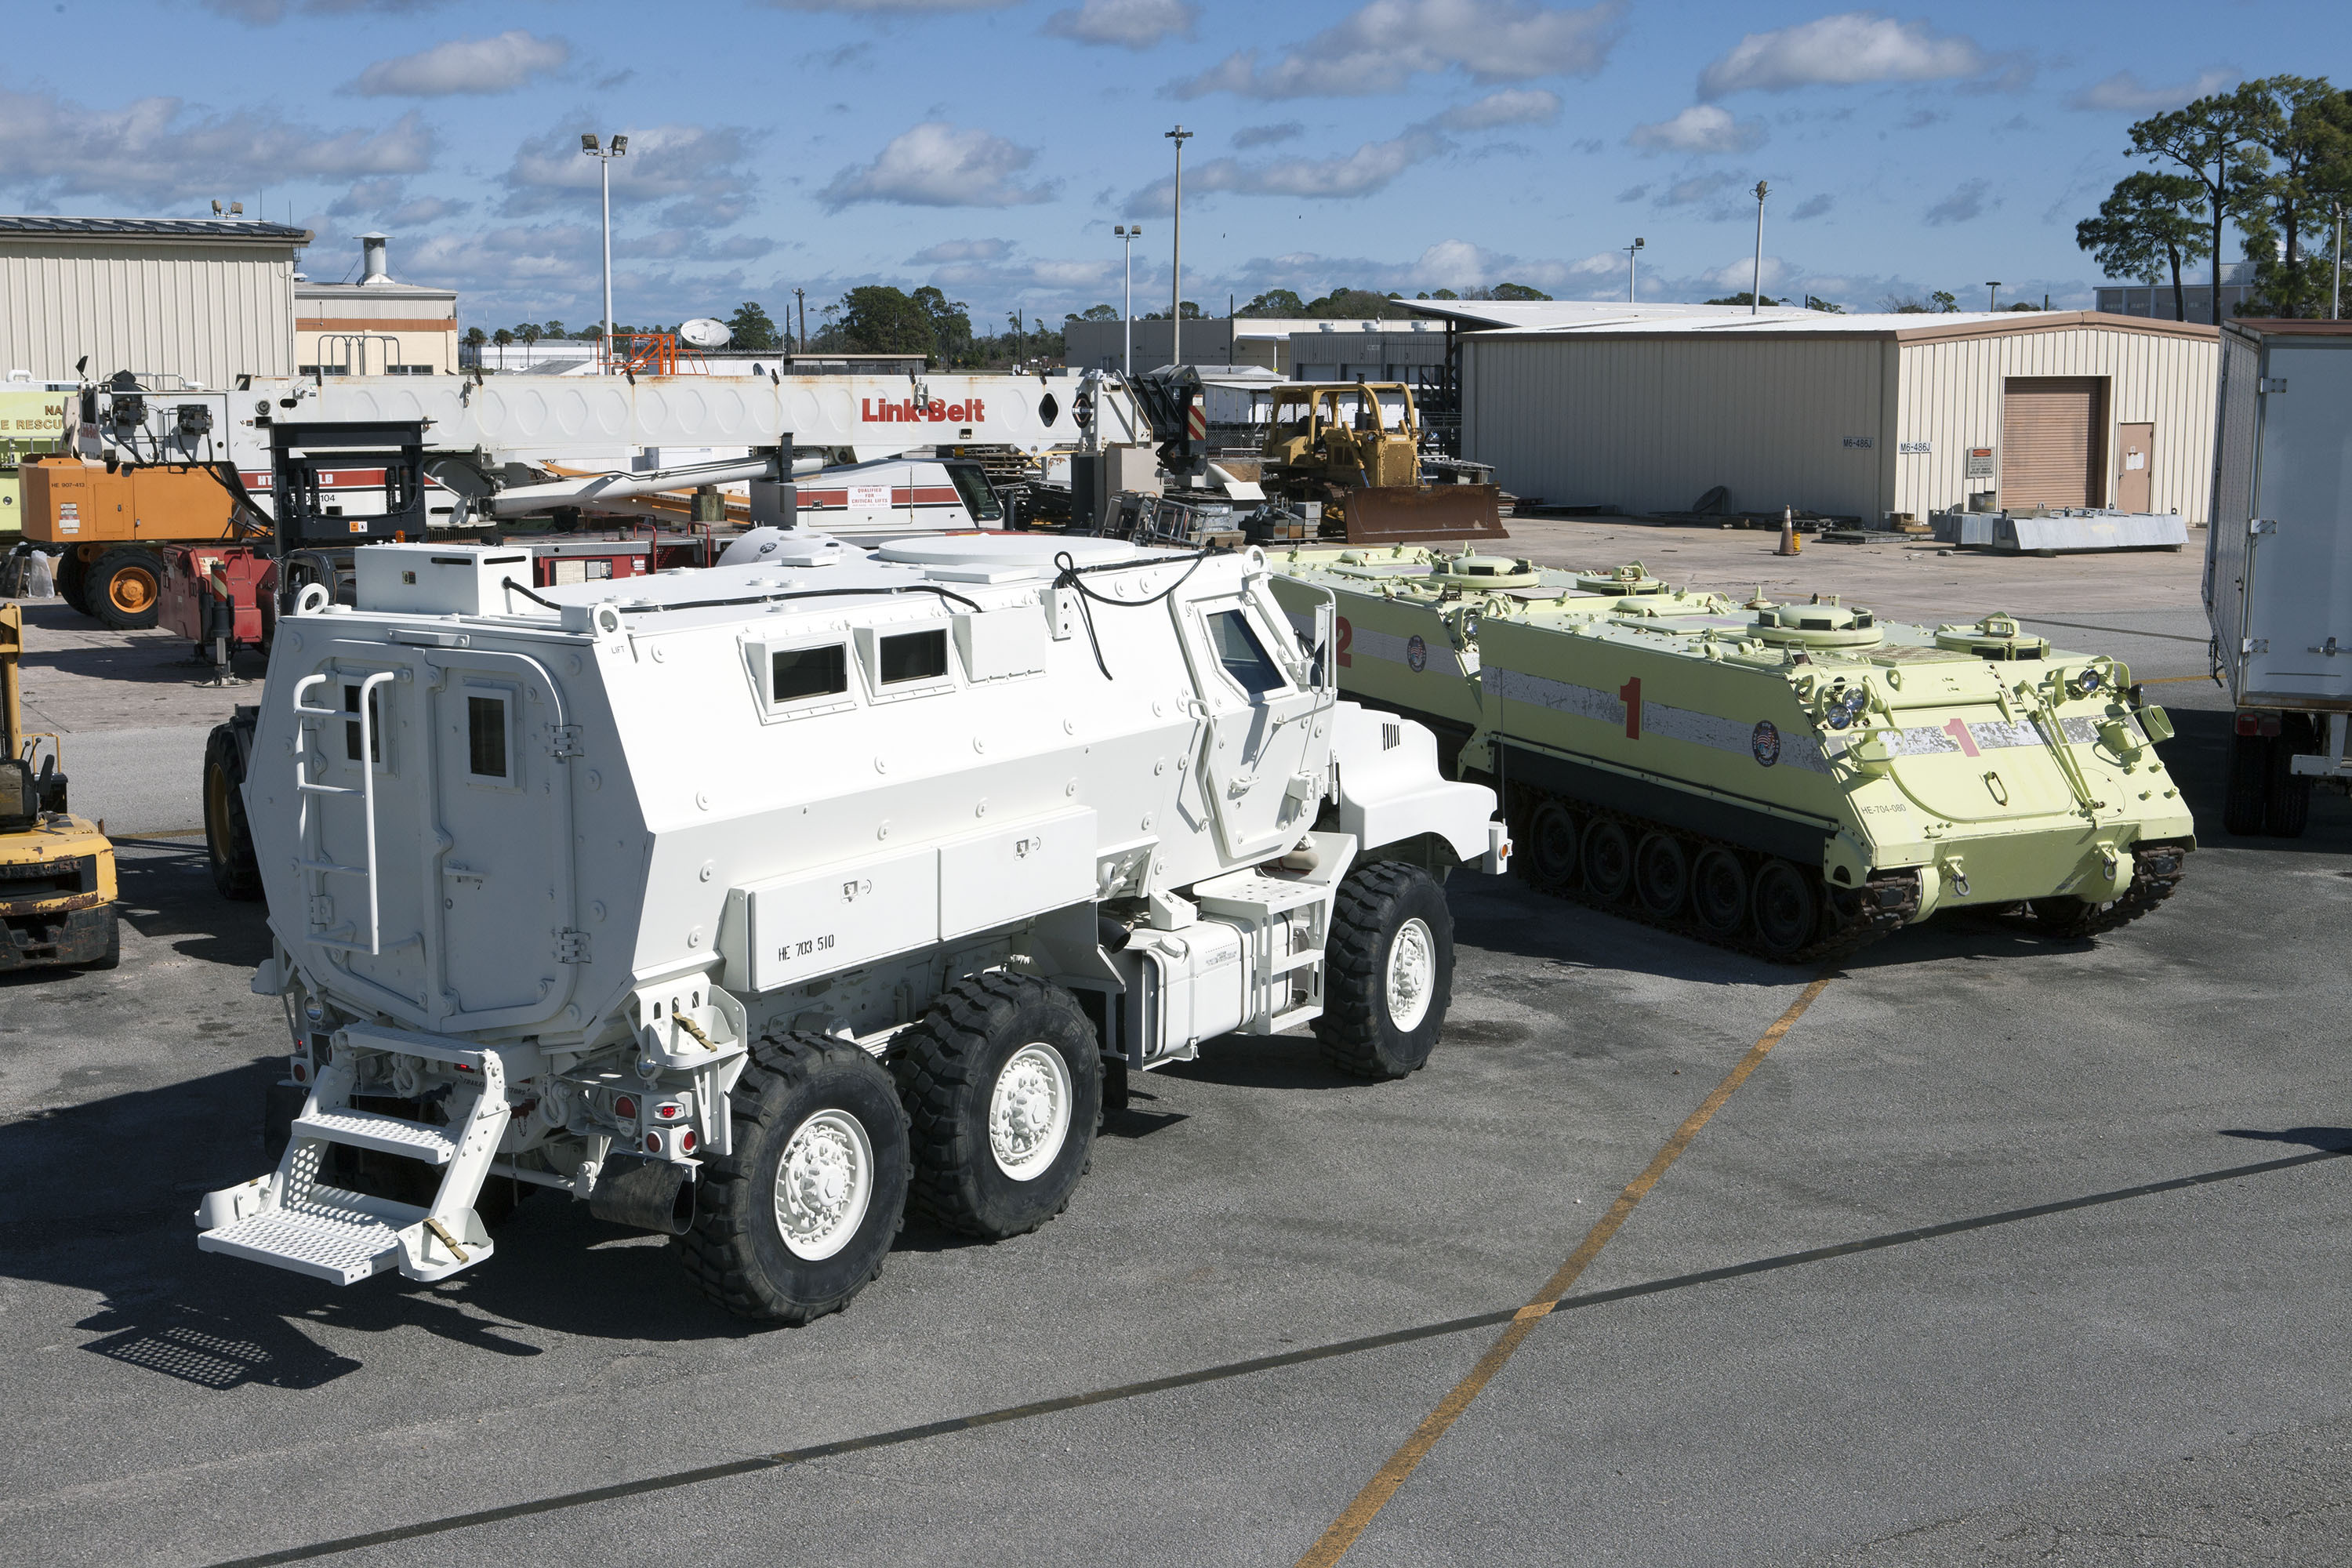 pictures of nasa security vehicles - photo #22